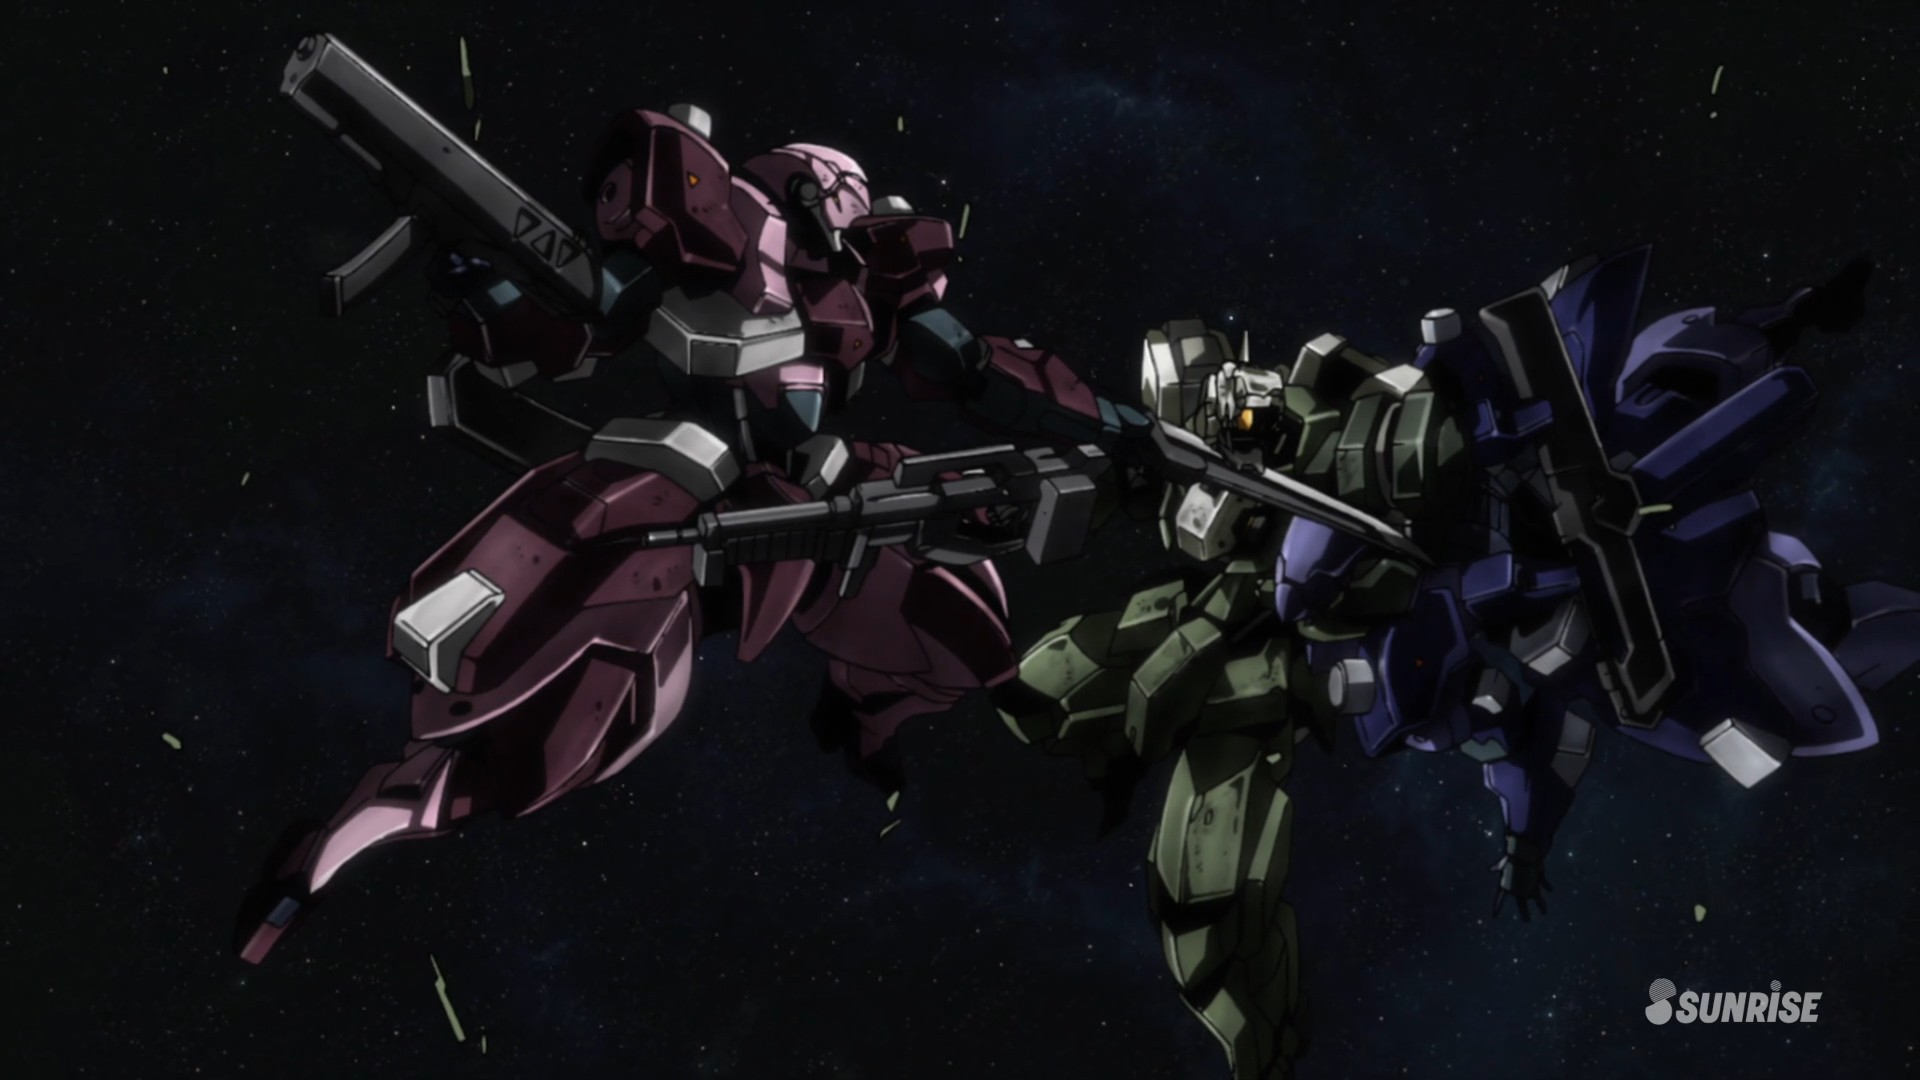 Gundam Iron Blooded Orphans Wallpaper Download Free Awesome Hd